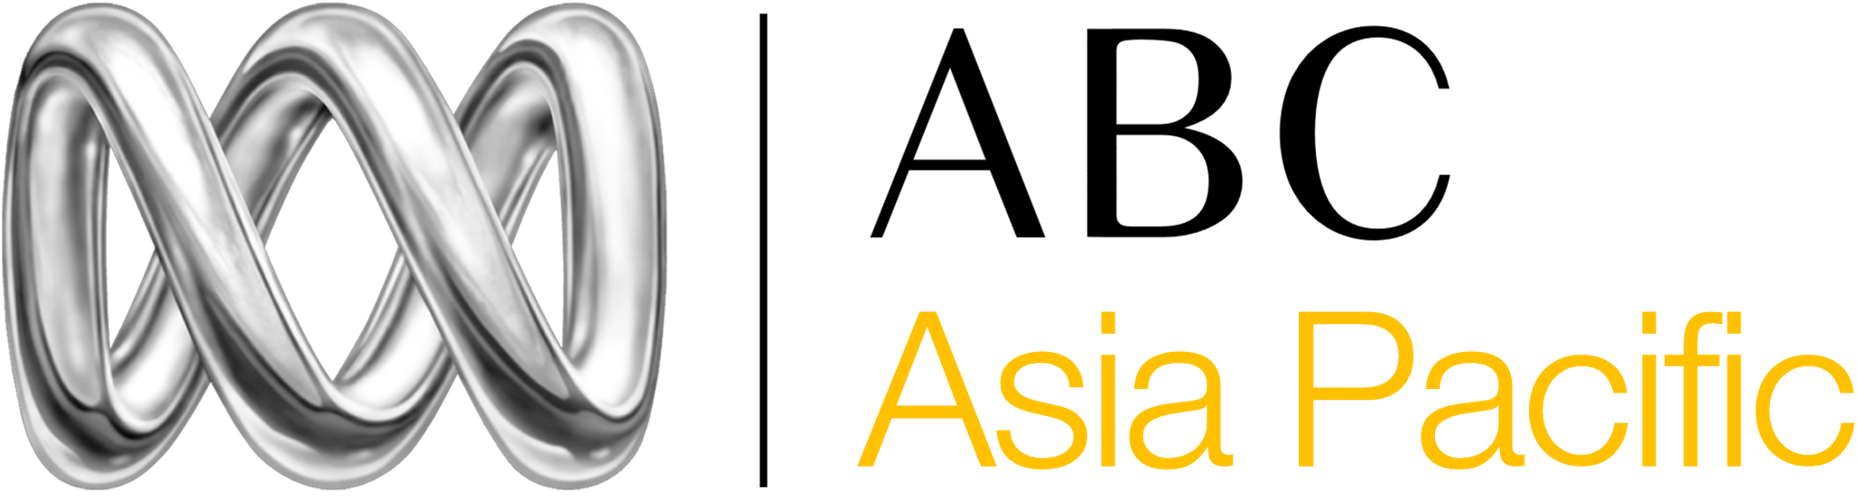 Australia Television Was Later Replaced With ABC Asia Pacific On 1 January 2002 Content From The Seven Network Nine Ten